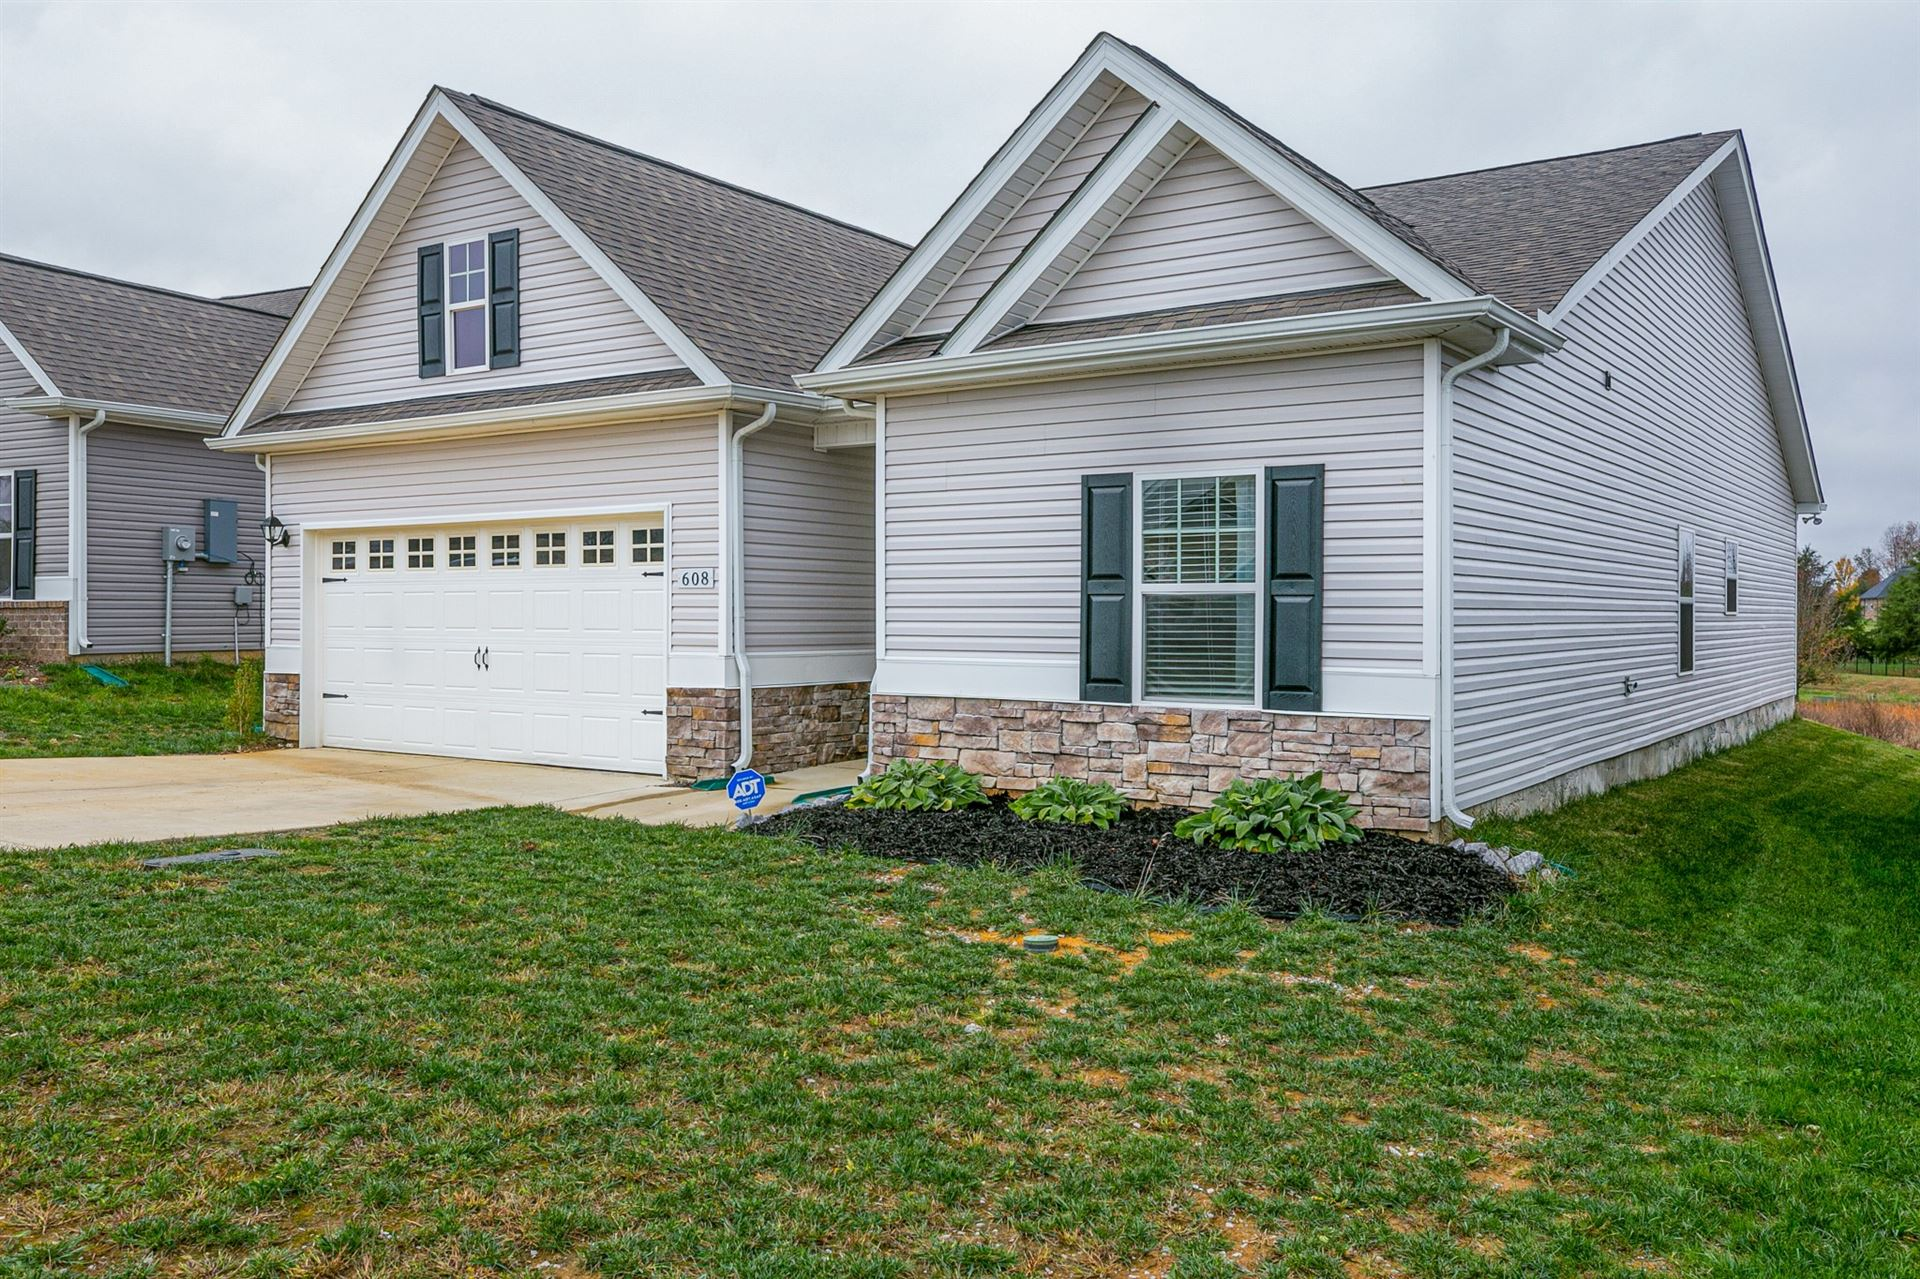 608 Tines Dr, Shelbyville, TN 37160 - MLS#: 2208594